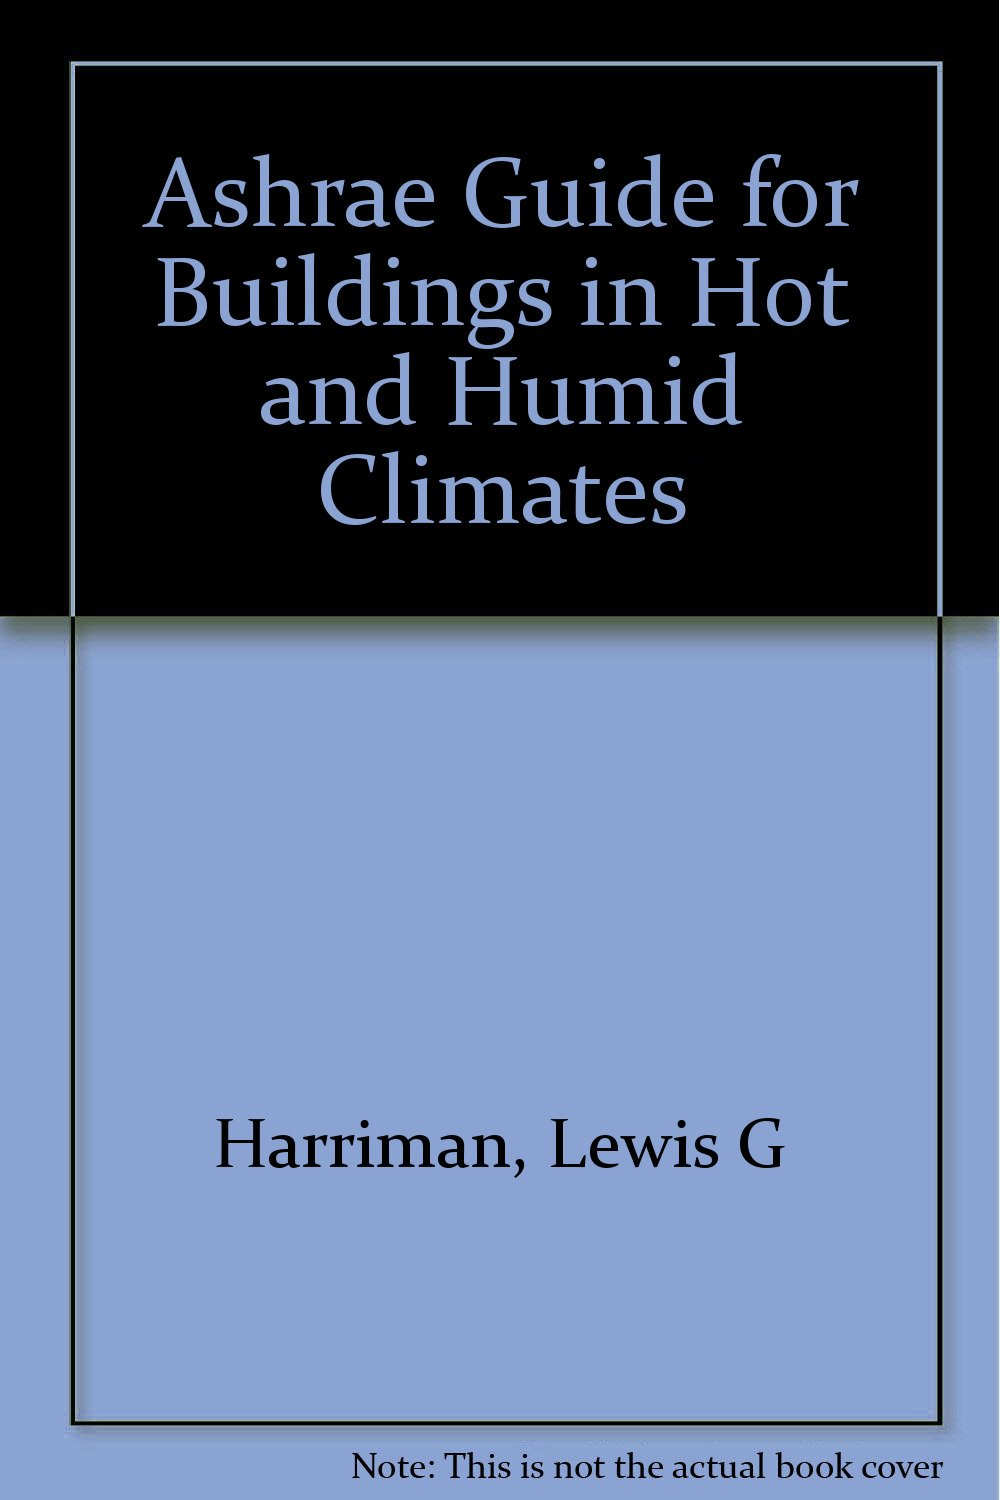 Ashrae Guide for Buildings in Hot and Humid Climates: Amazon.co.uk: Lewis G  Harriman: 9781933742267: Books